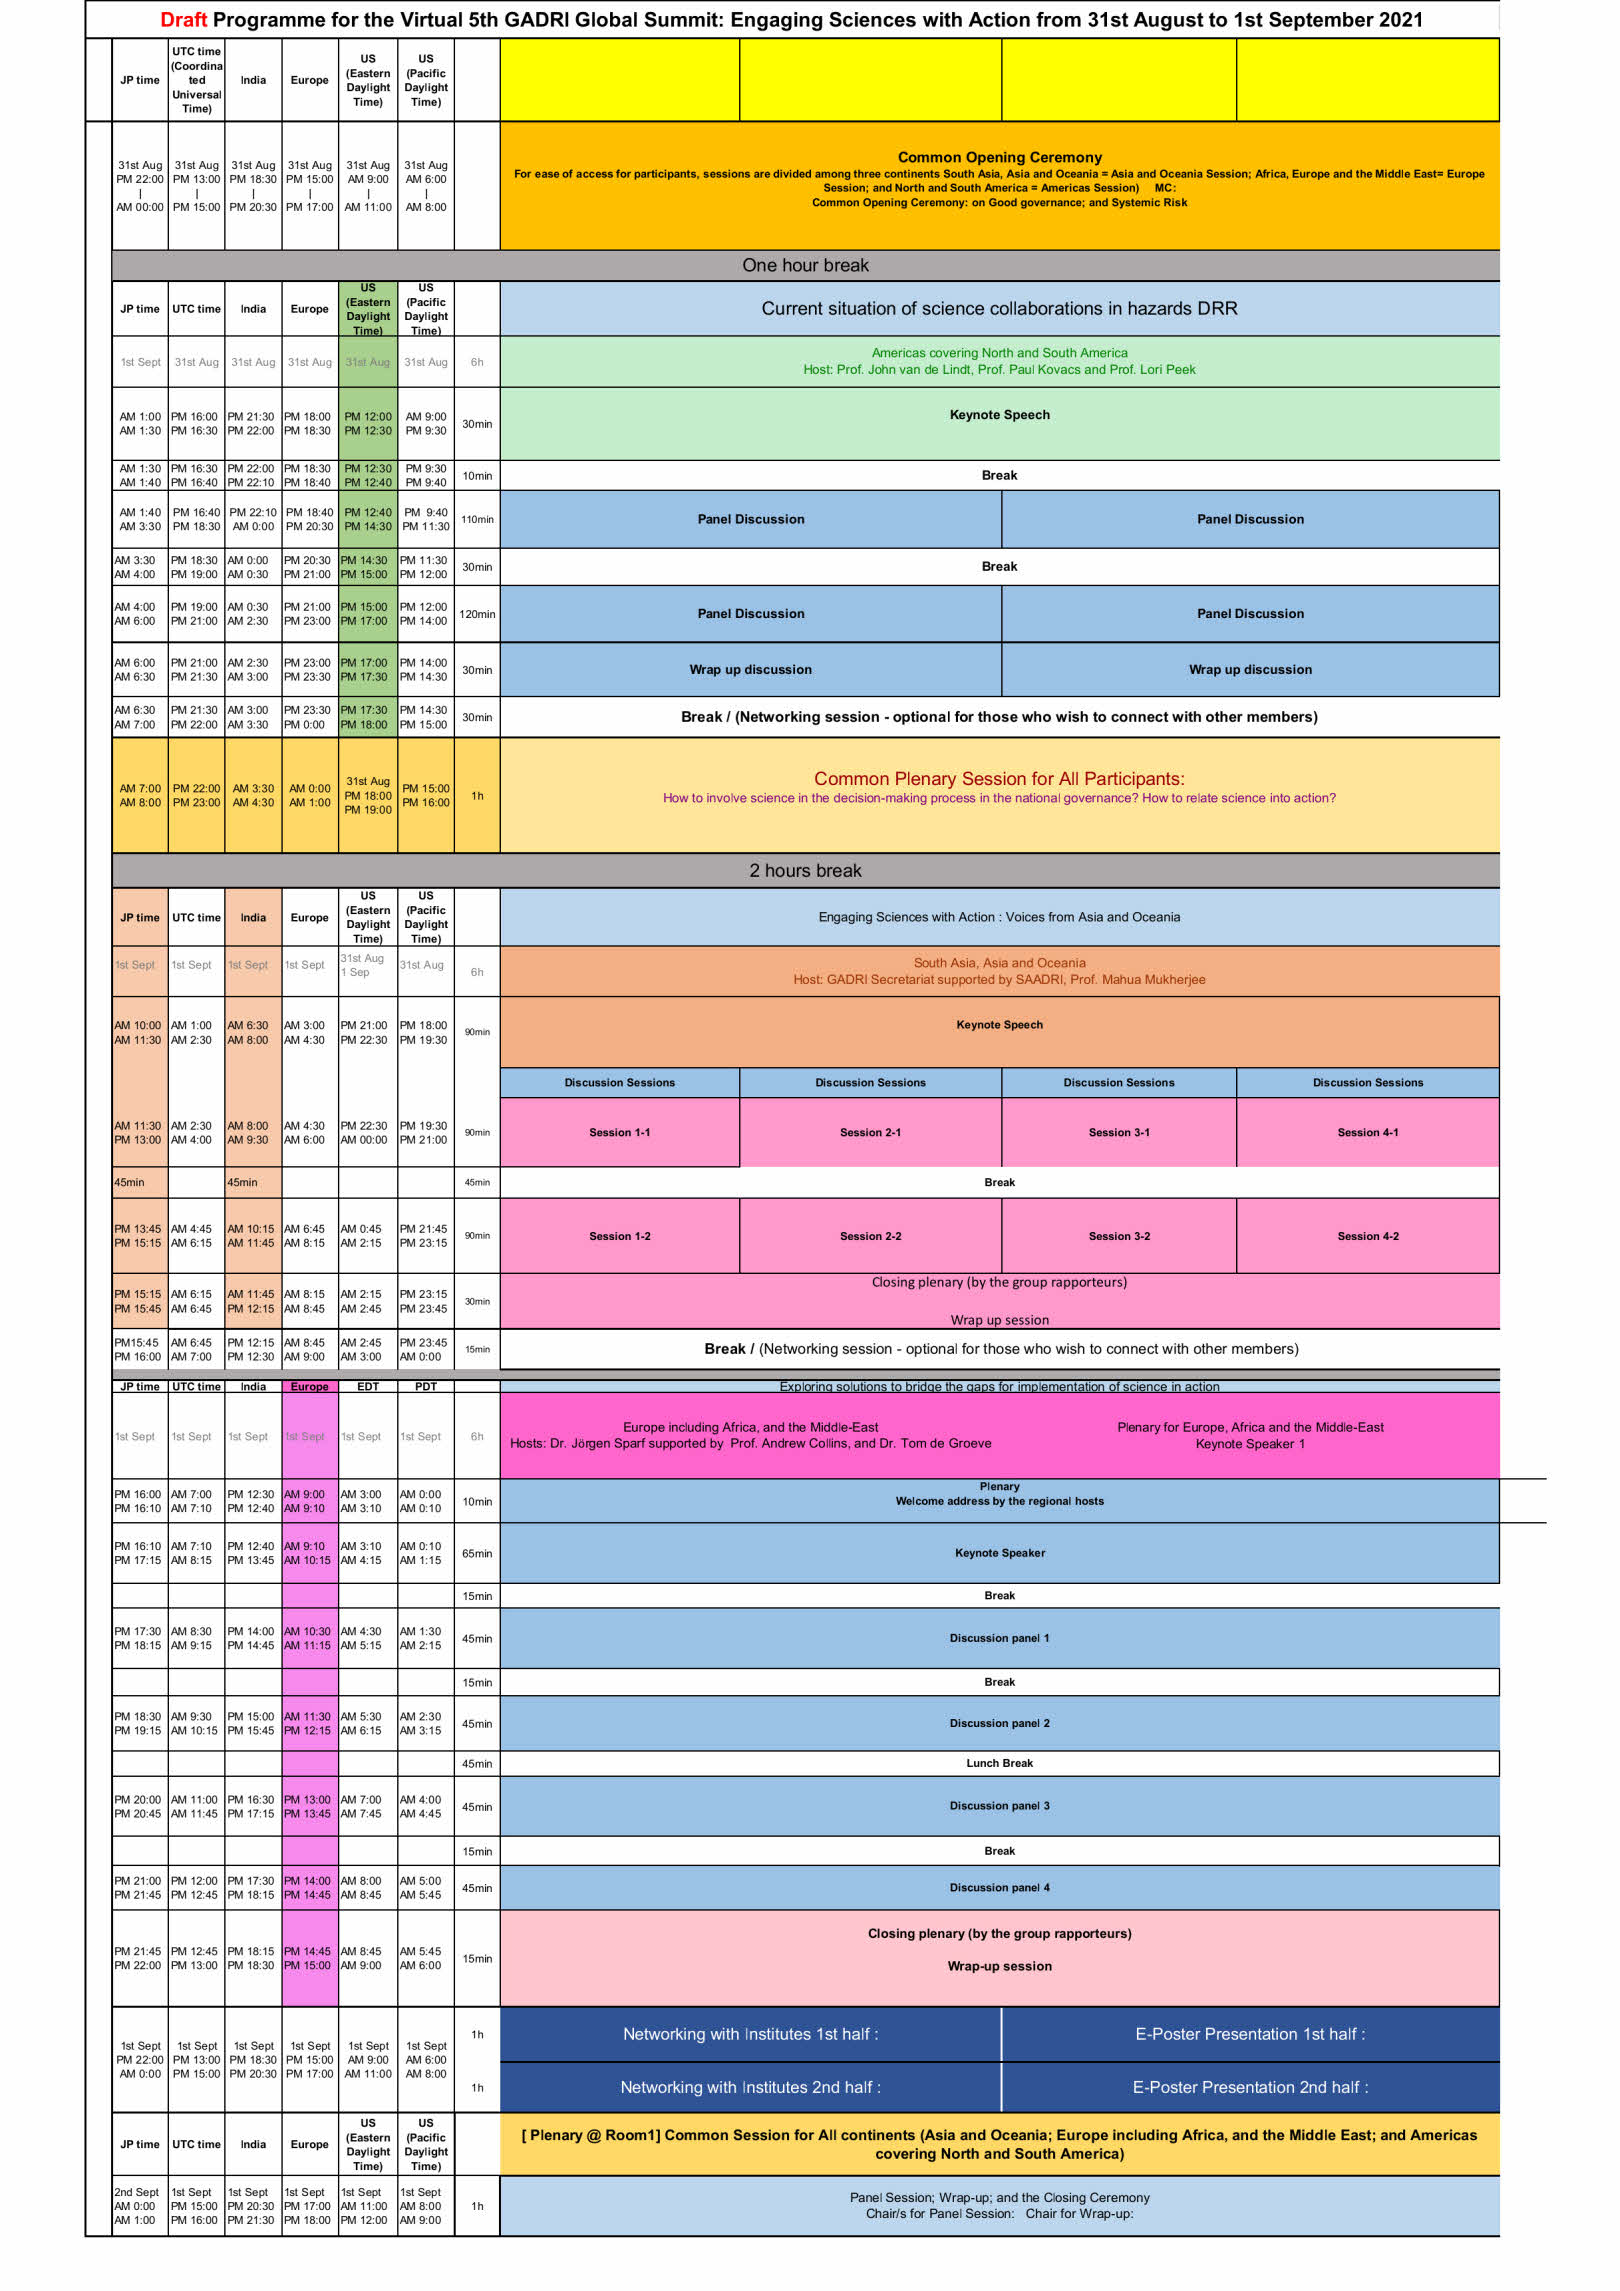 Programme_5GS_2021_draft_.jpg